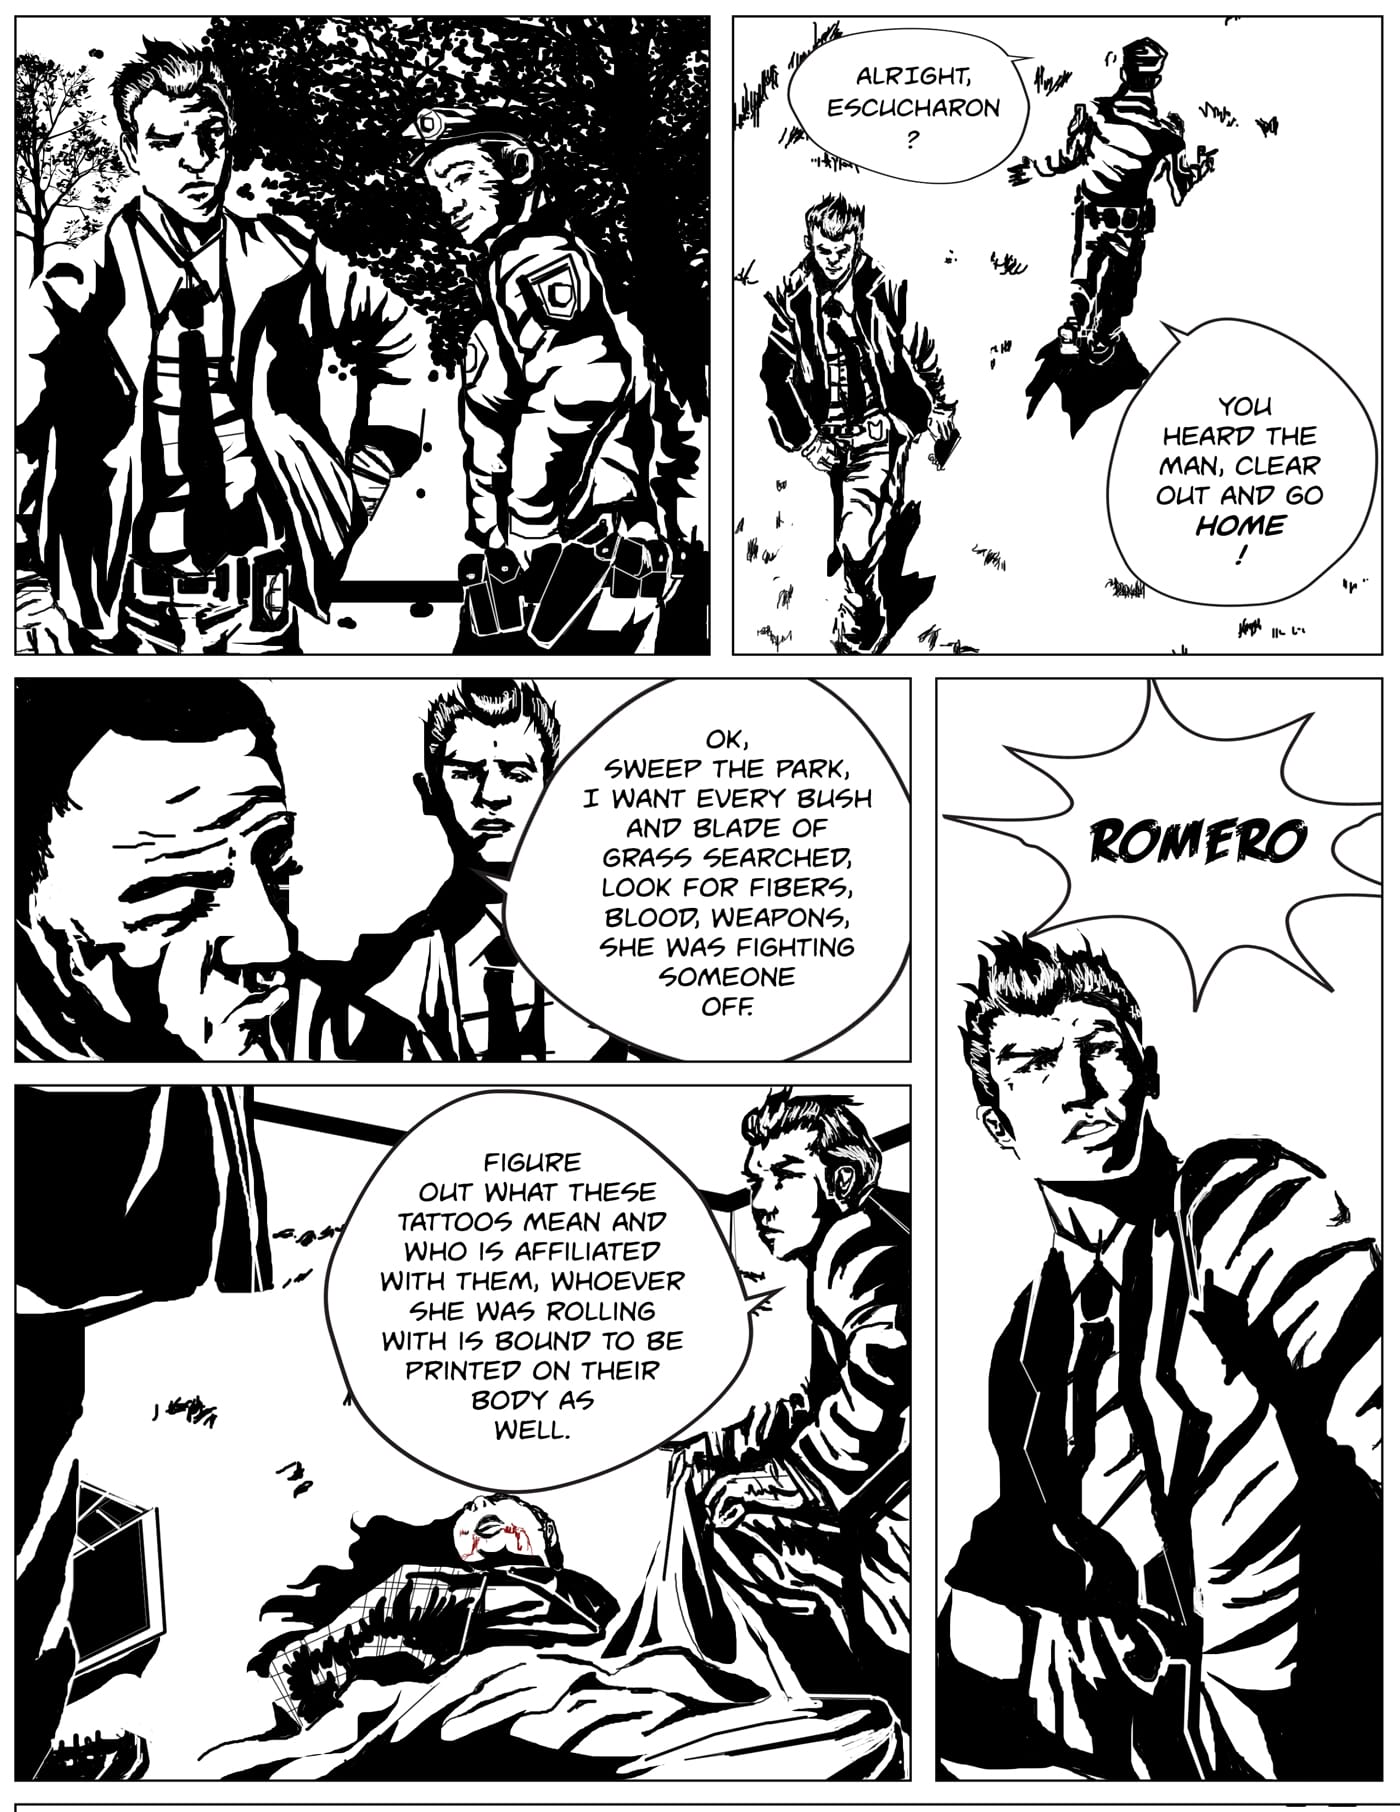 Children of Kronos comic page five of chapter one Demeter, Romero starts trying to figure out the identity of the dead woman as someone yells his name offscreen